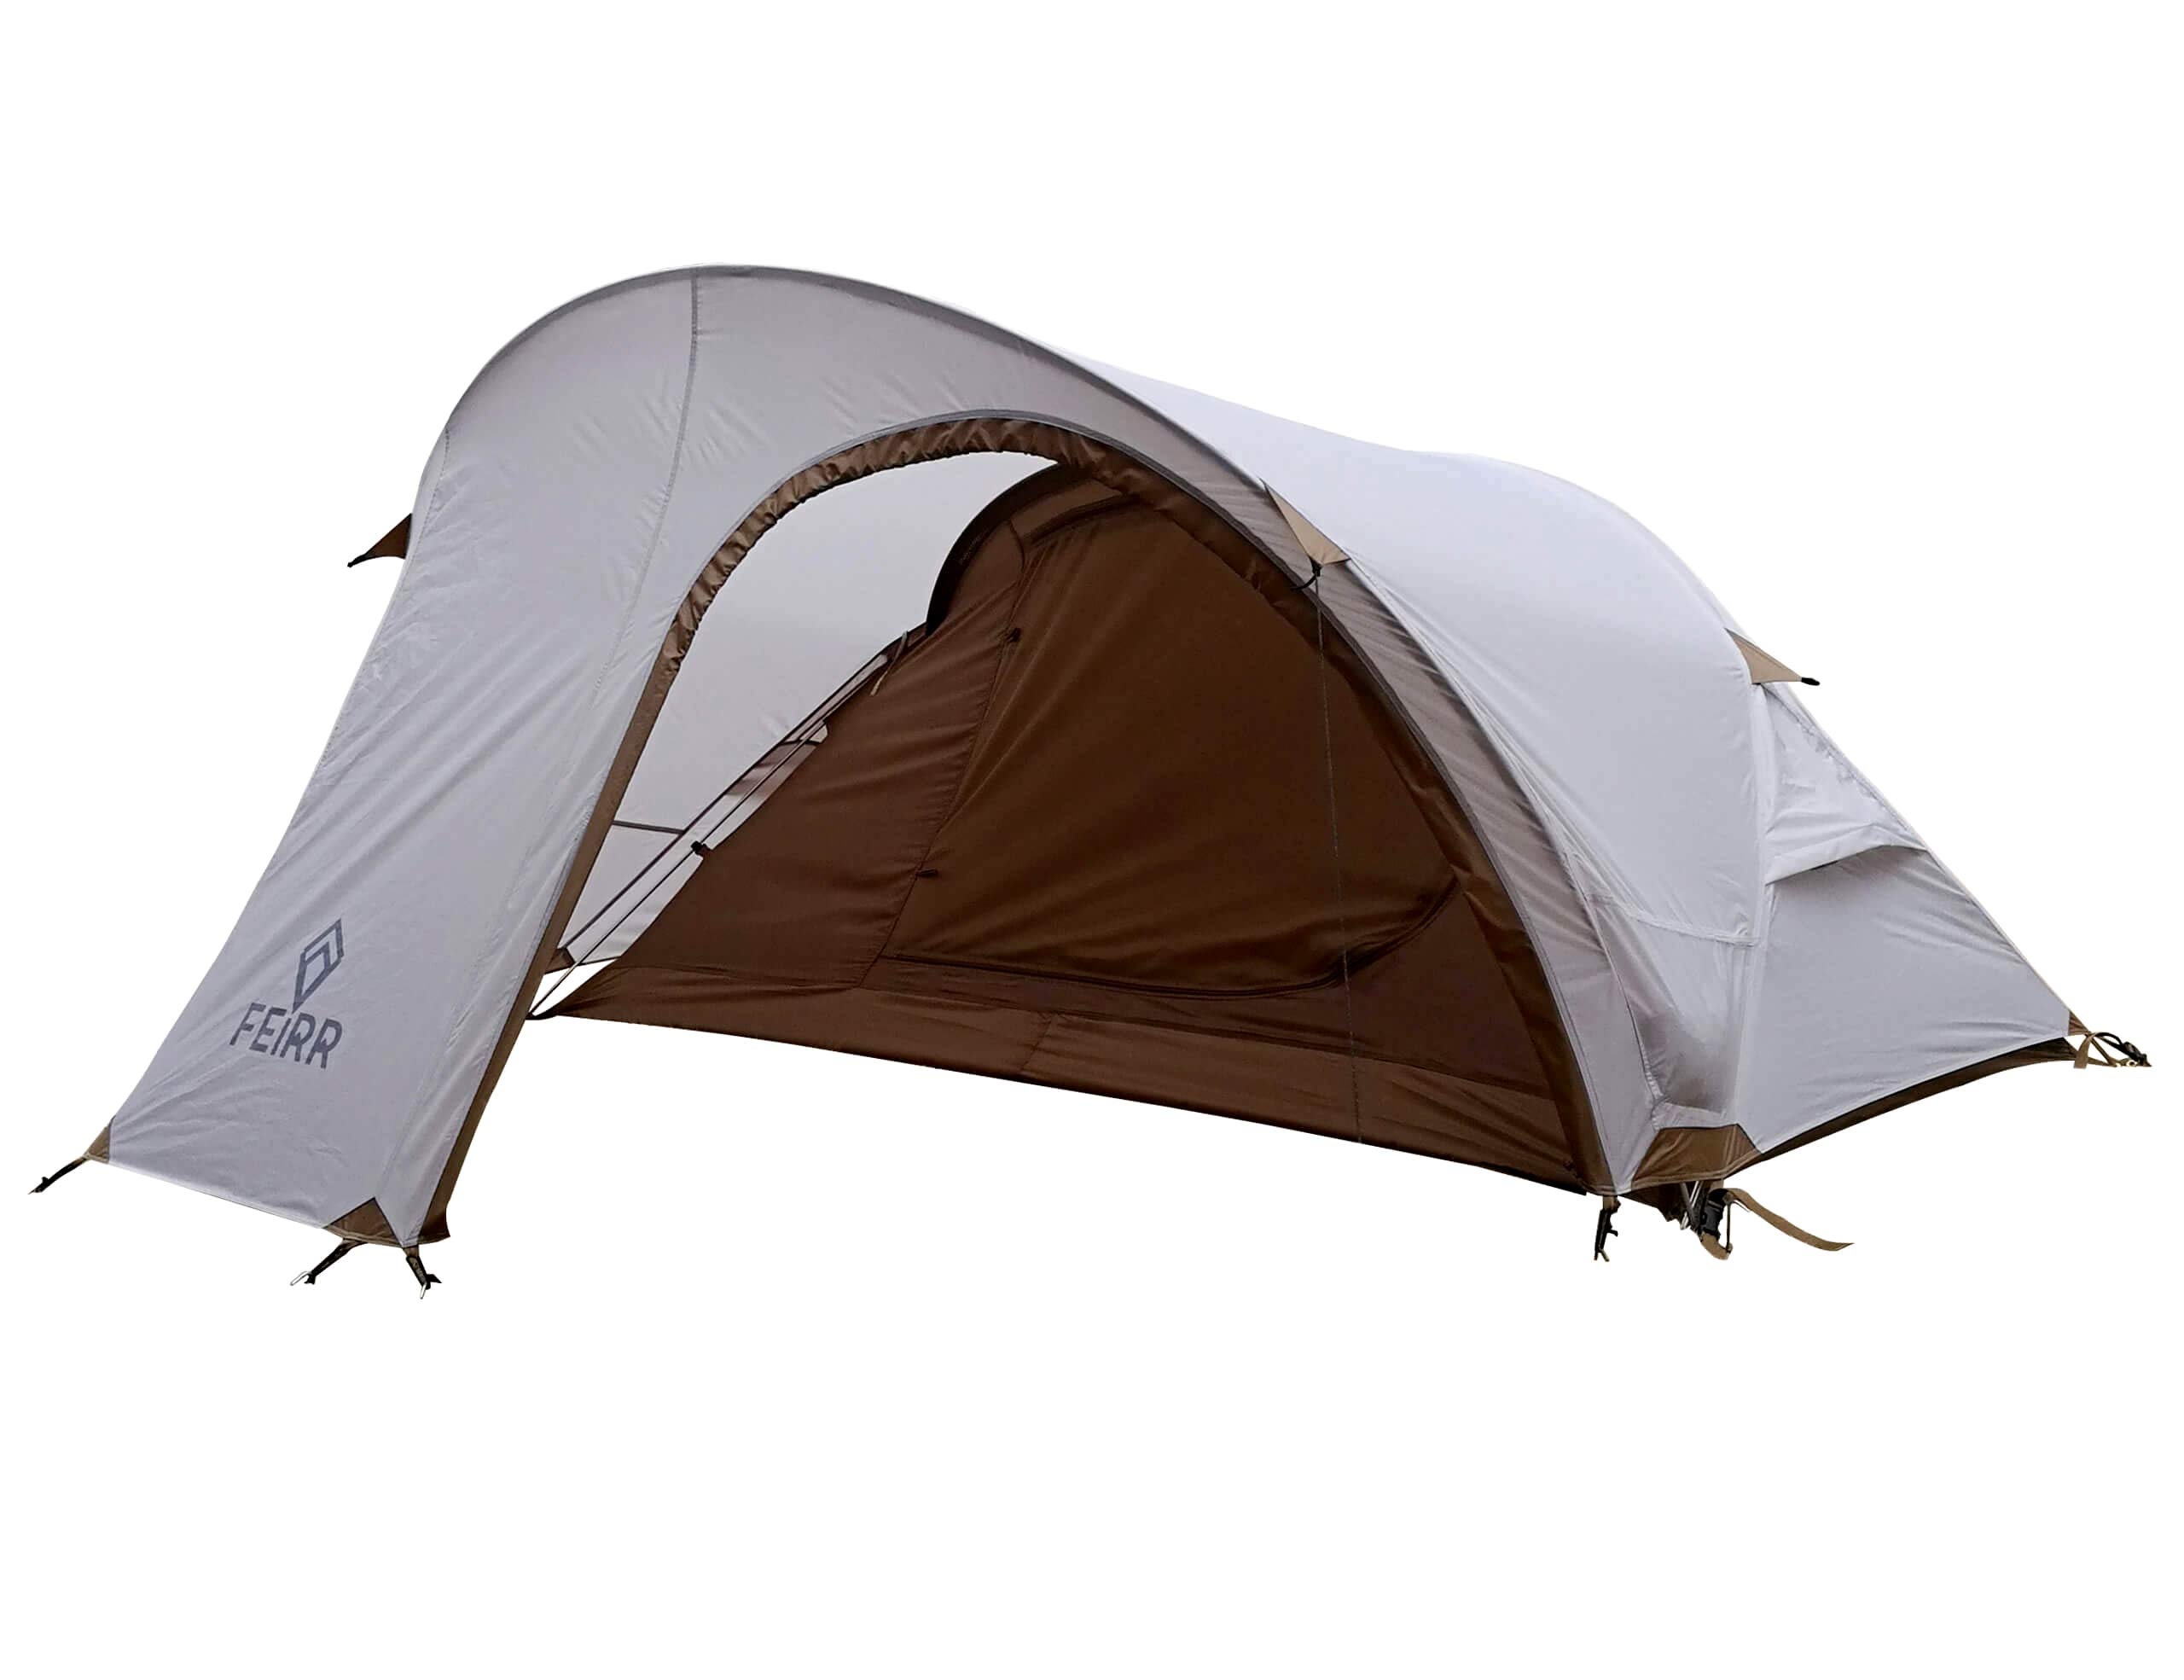 Nassi Equipment Feirr Collection 2-Person Backpacking Tent for Camping with Carry Bag and Repair Kit, Portable Waterproof Family Tent, Aluminum Frame